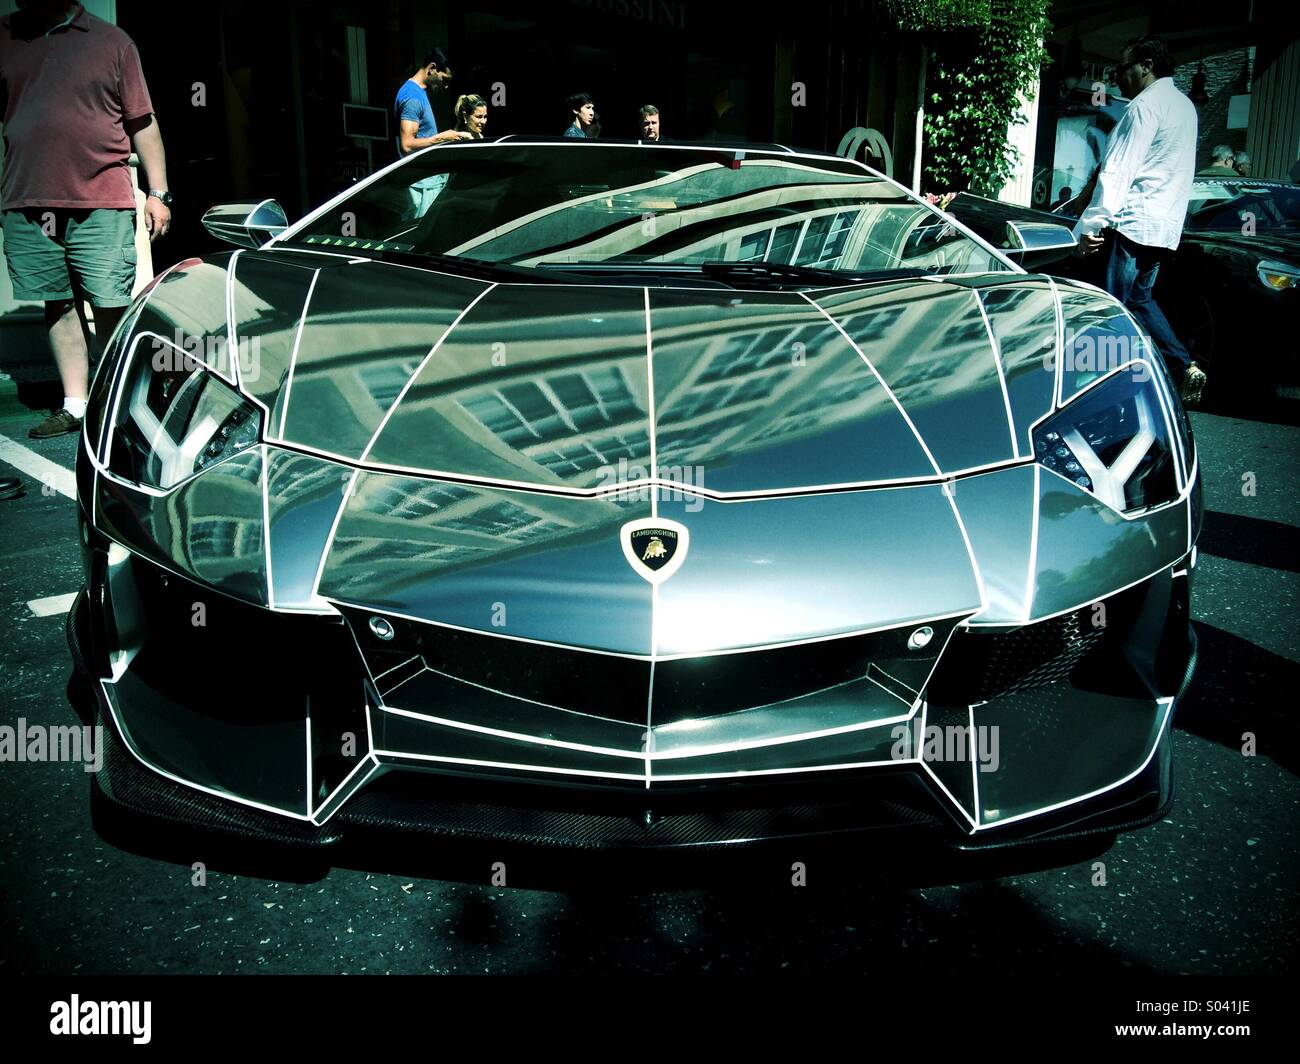 custom chrome tron lamborghini aventador stock photo 309875734 alamy. Black Bedroom Furniture Sets. Home Design Ideas